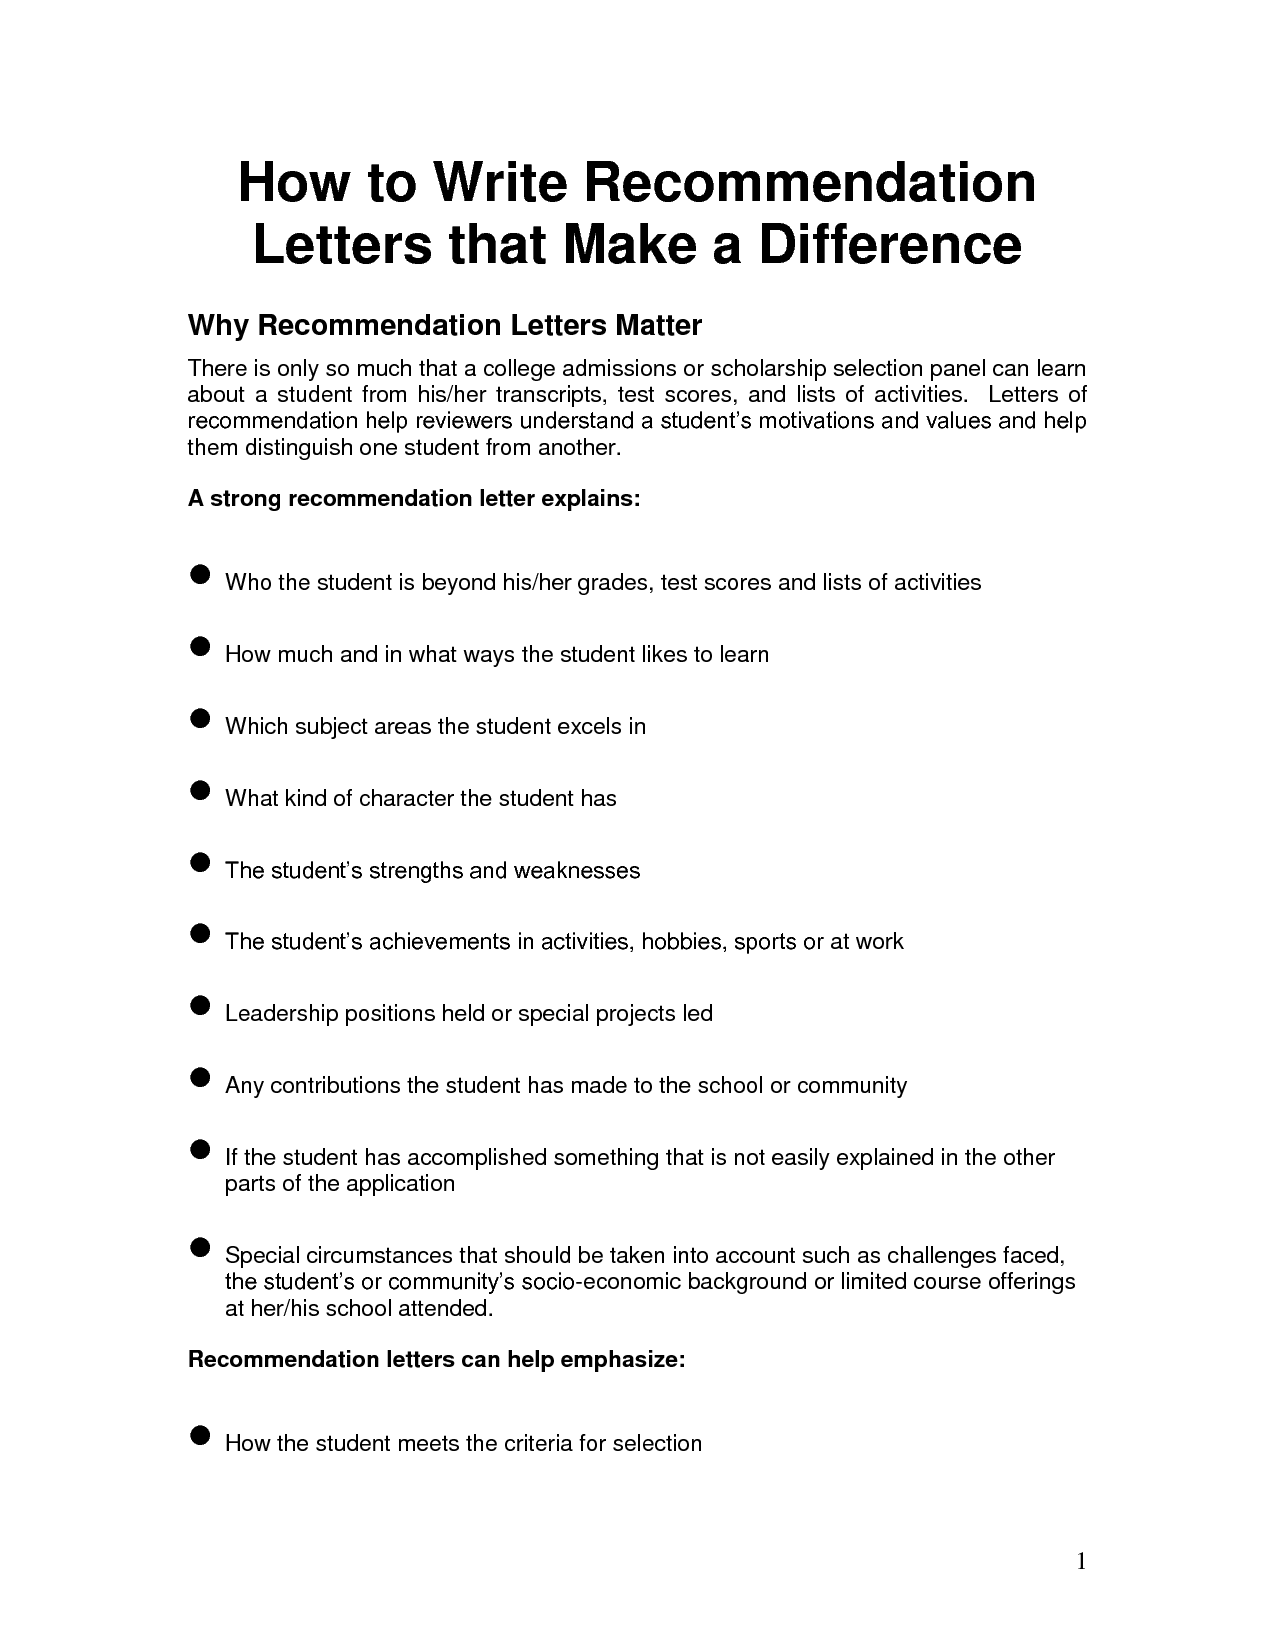 How to Write a Reference Letter pictures